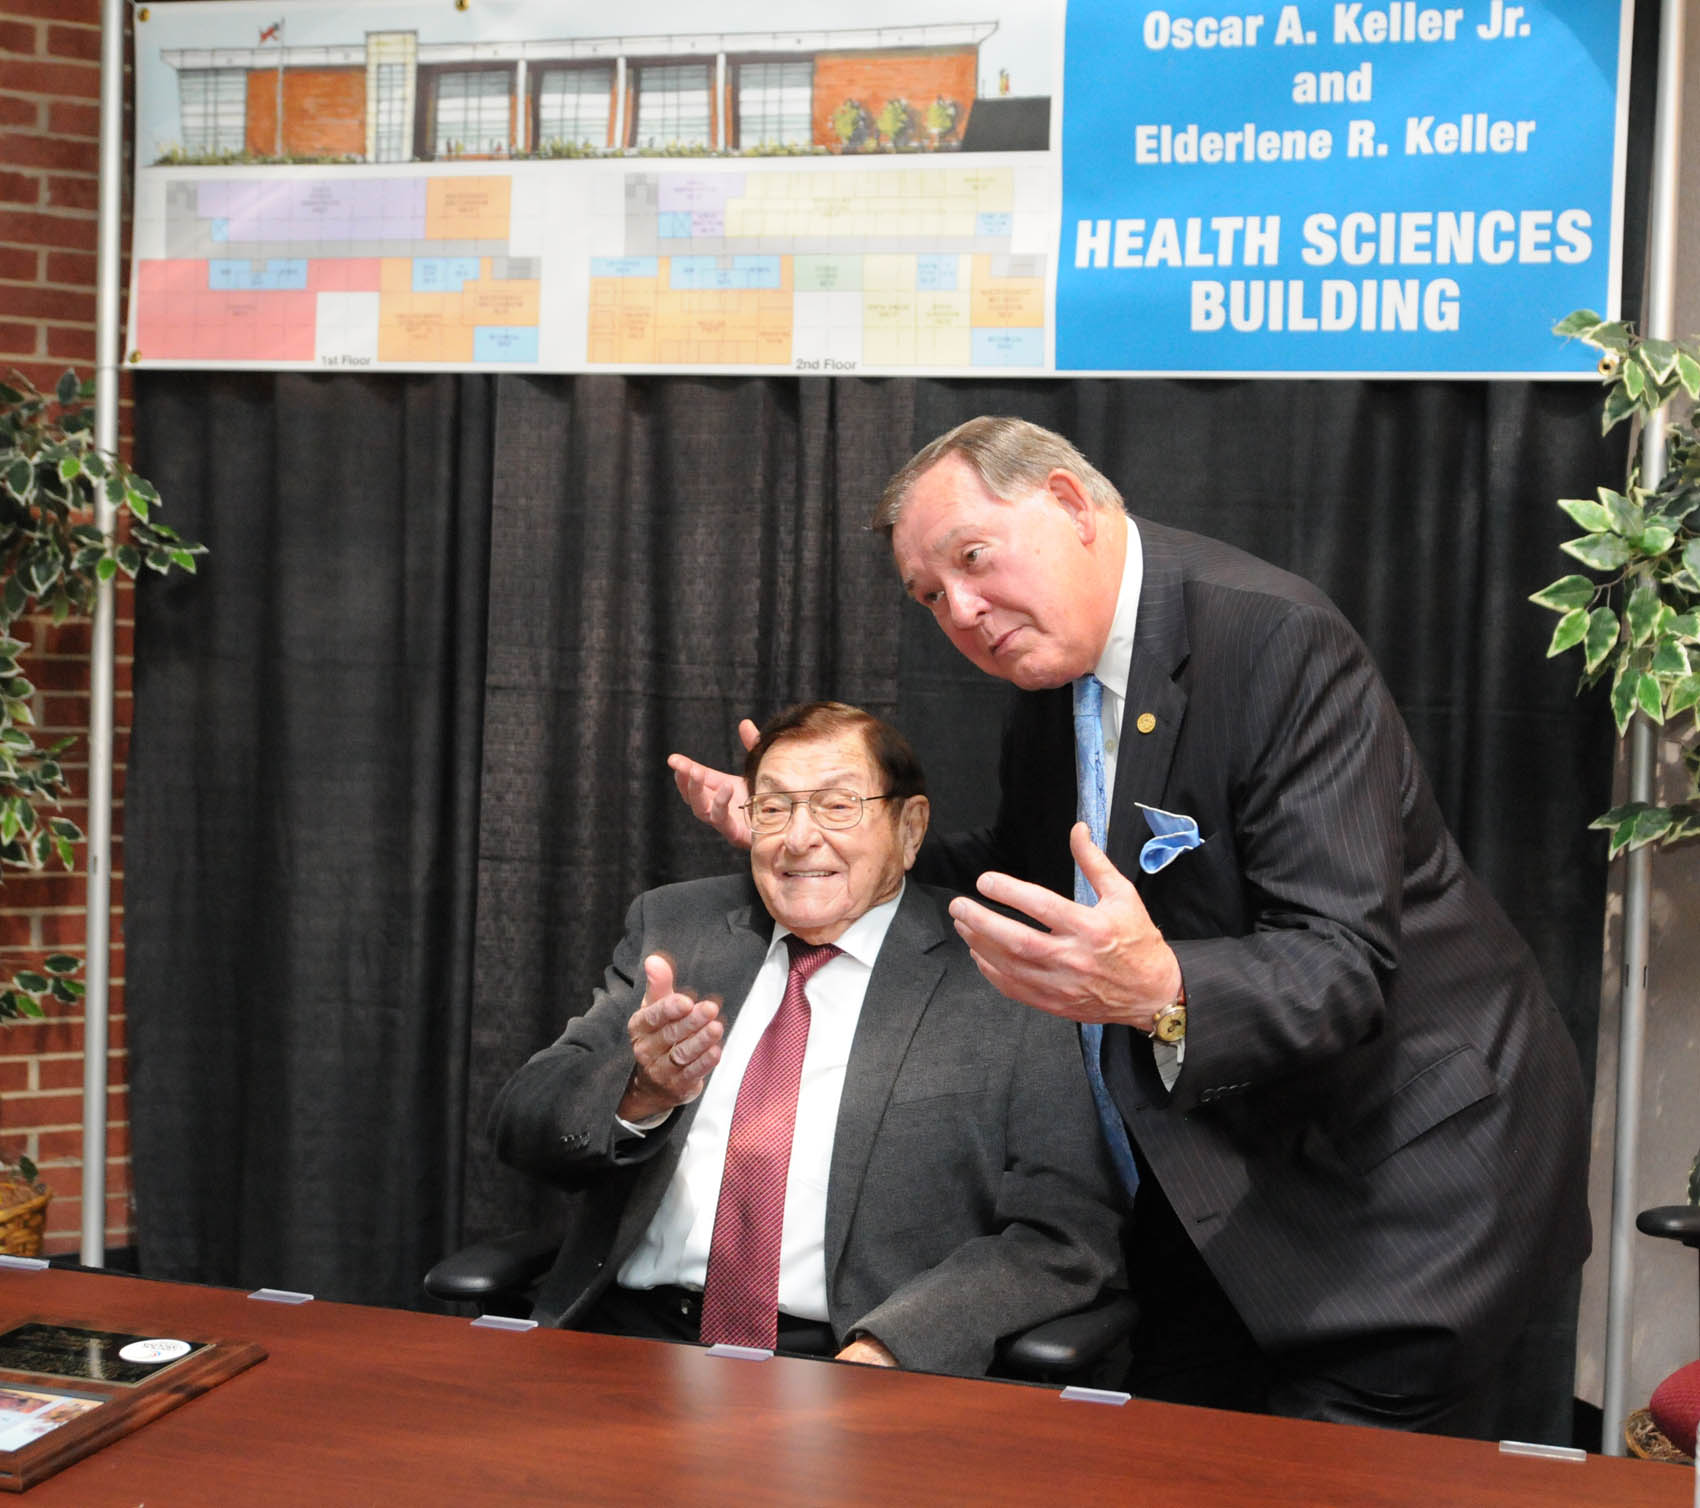 Click to enlarge,  Former North Carolina Secretary of State Rufus Edmisten (right) shares a moment with Oscar A. Keller Jr. at the Oscar A. Keller Jr. and Elderlene R. Keller Health Sciences Building Dedication ceremony.